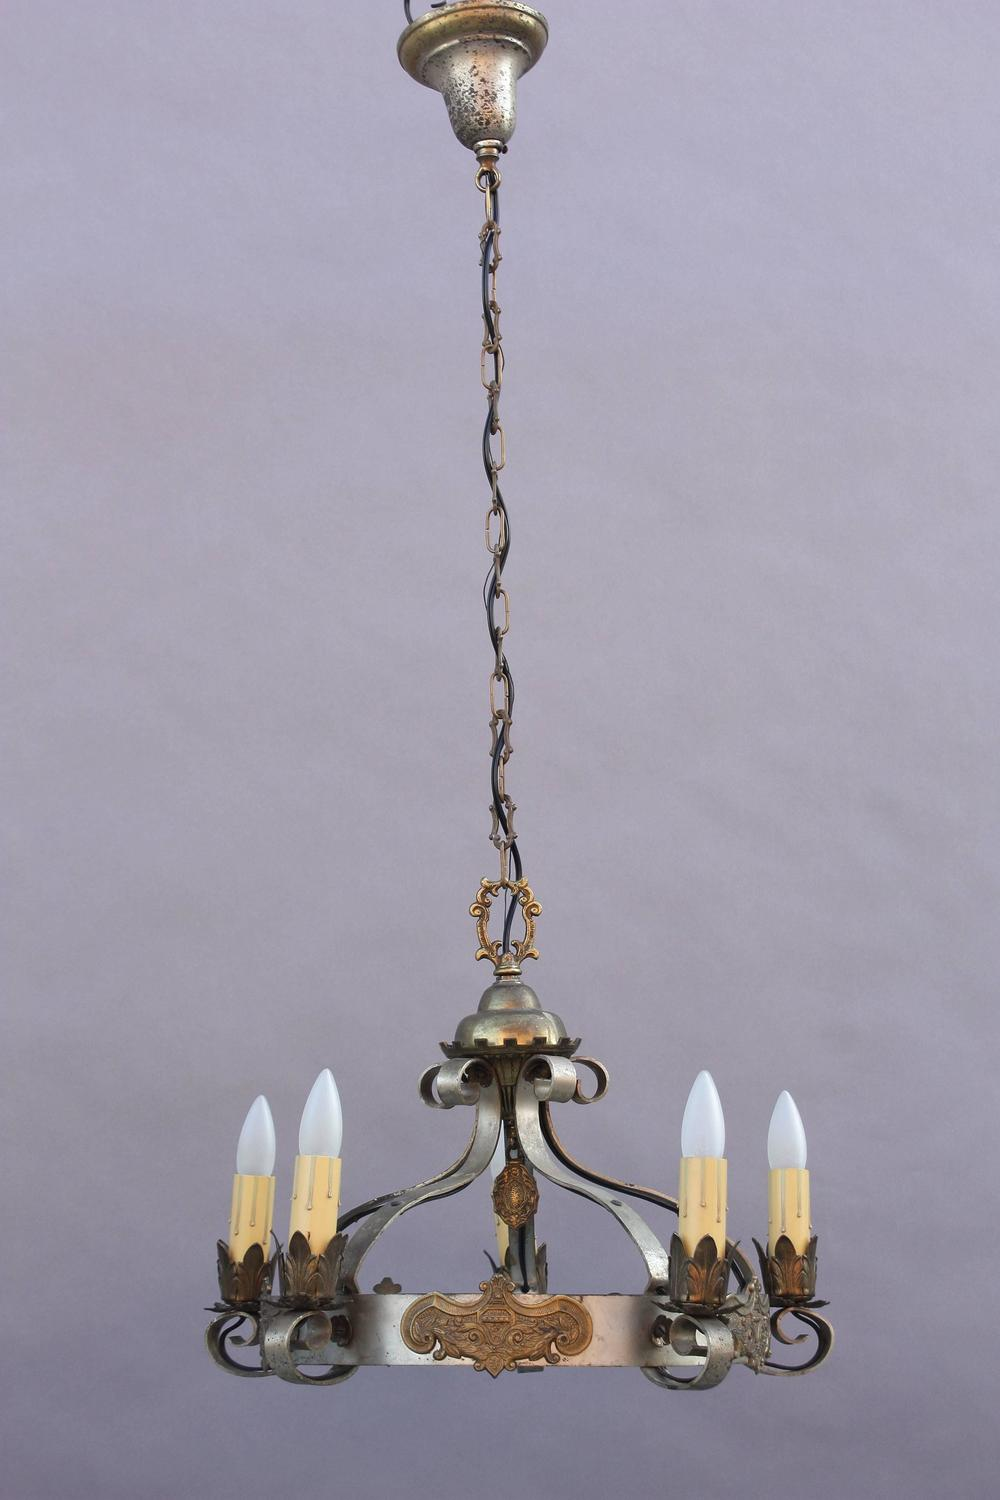 Gold Tone Pendant Lighting : Spanish revival chandelier with pewter and gold tone